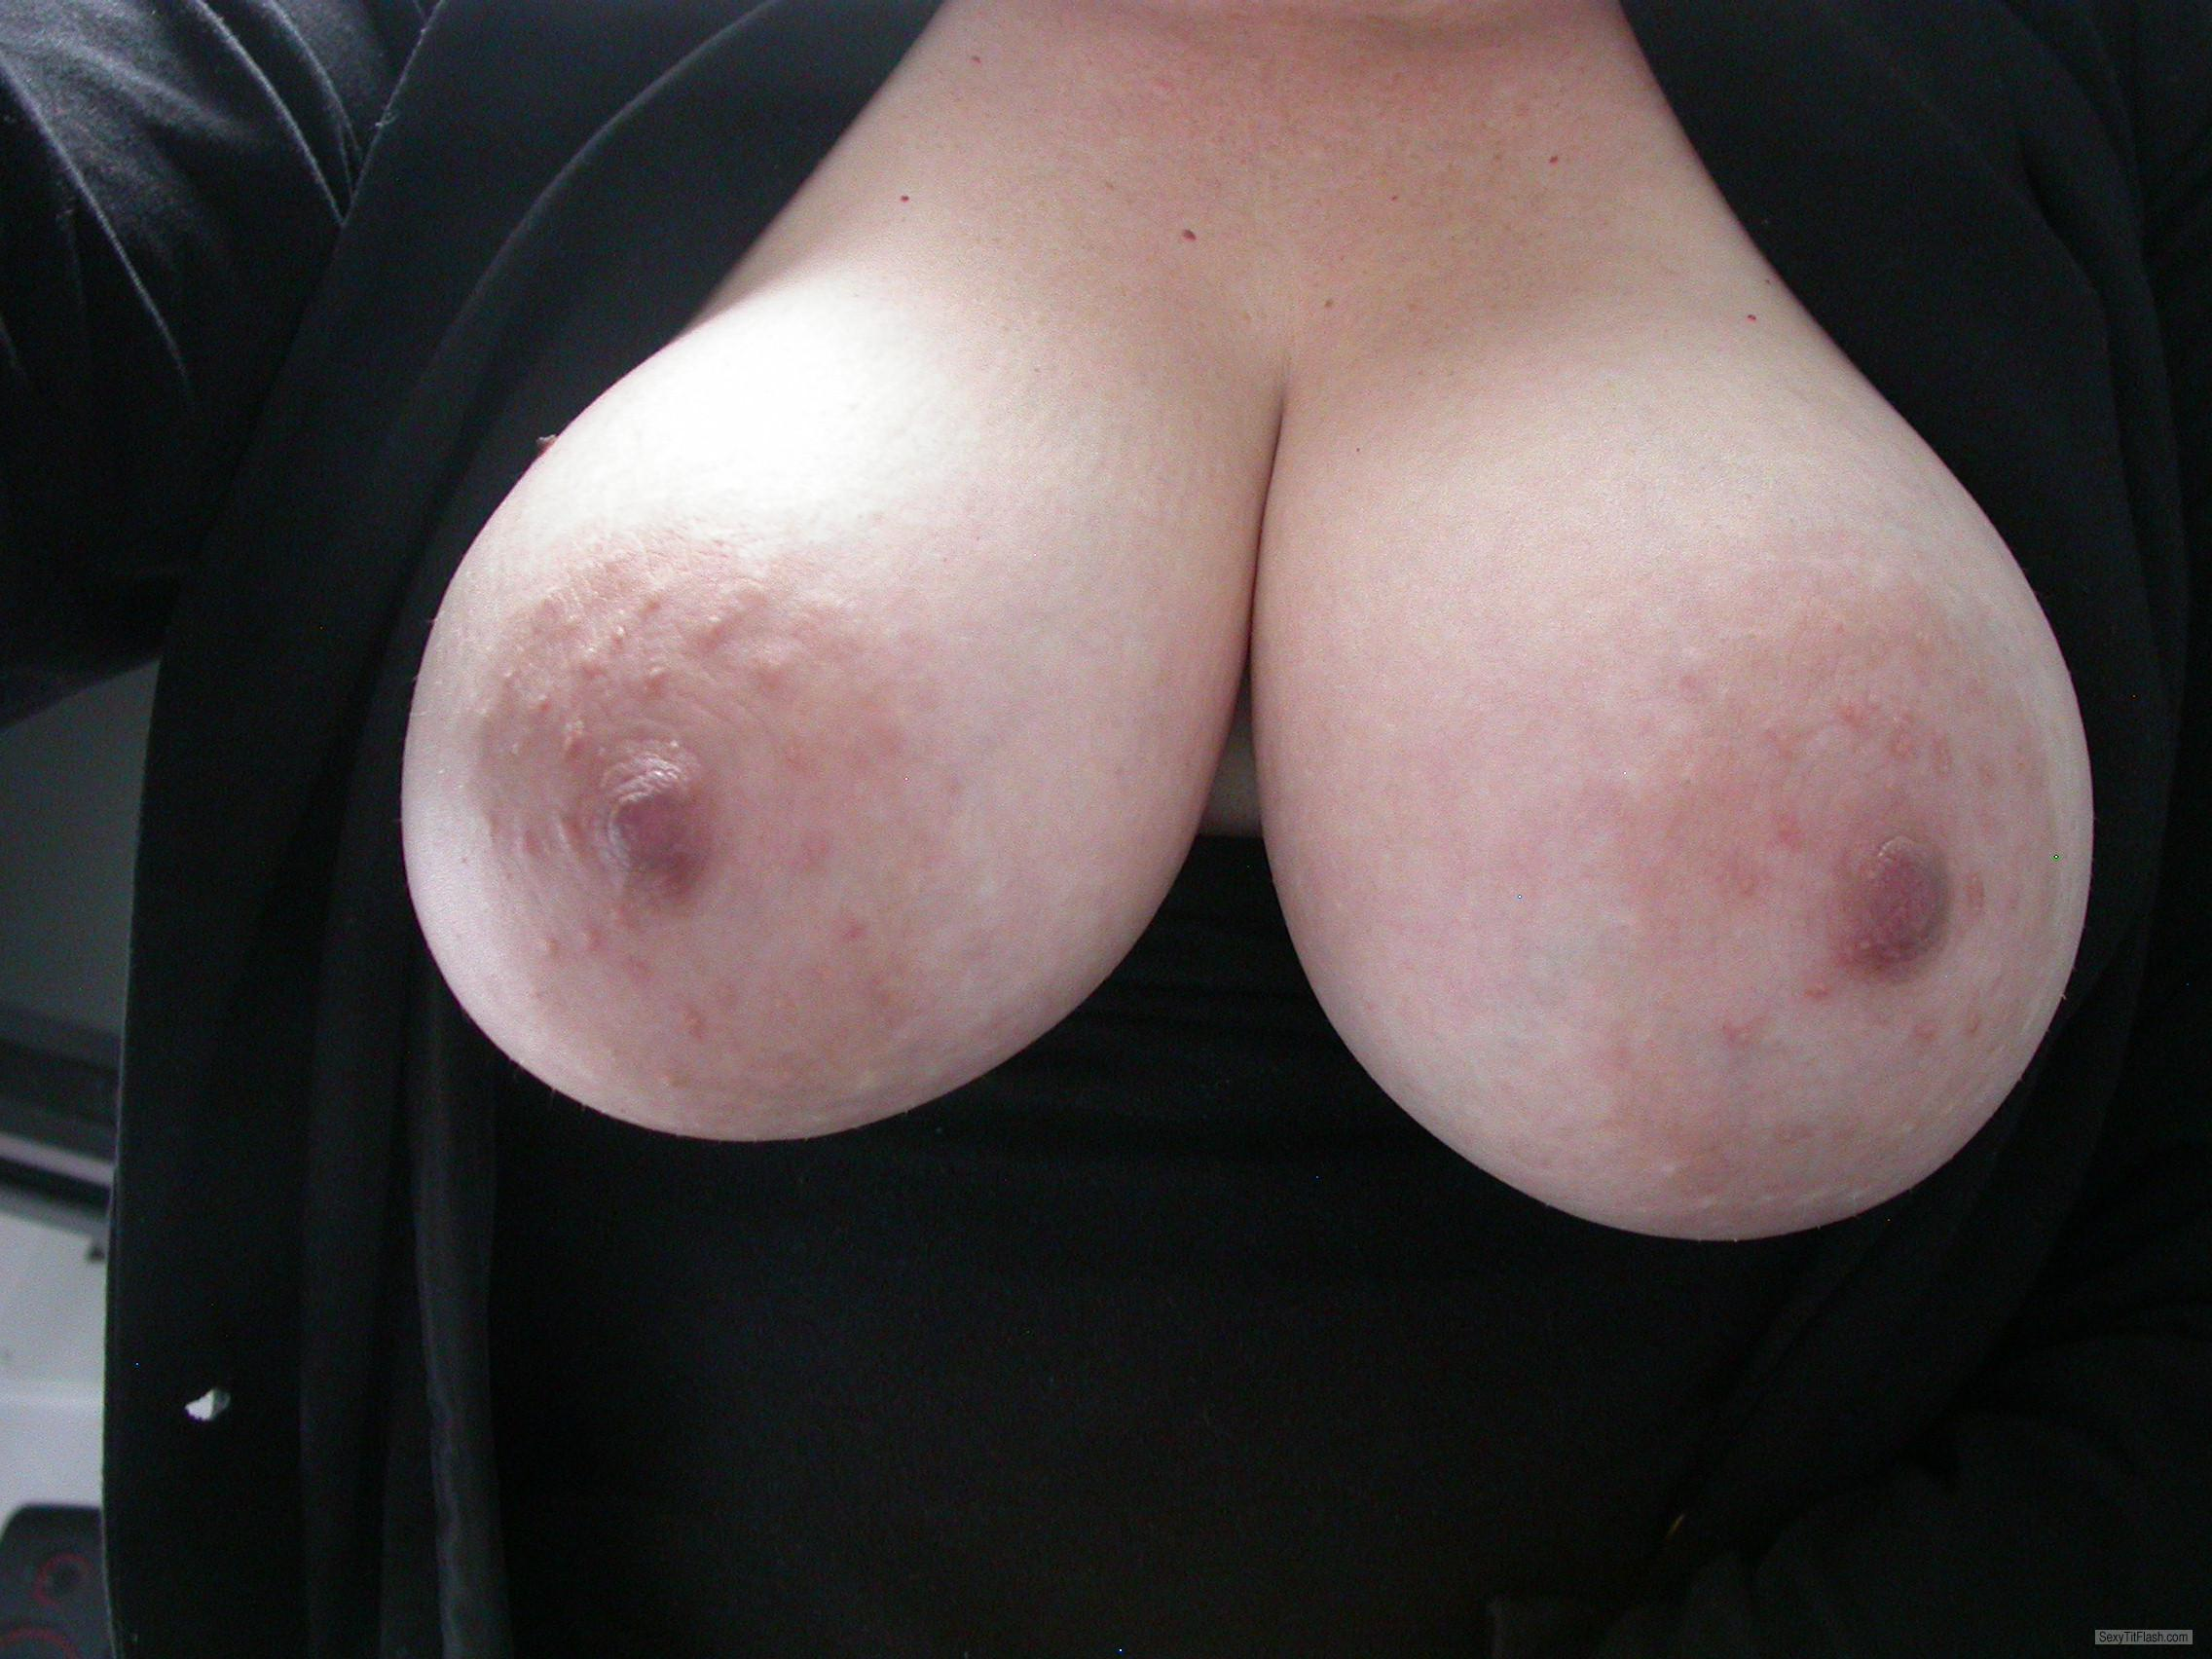 Tit Flash: Wife's Very Big Tits - ***** from Tuvalu